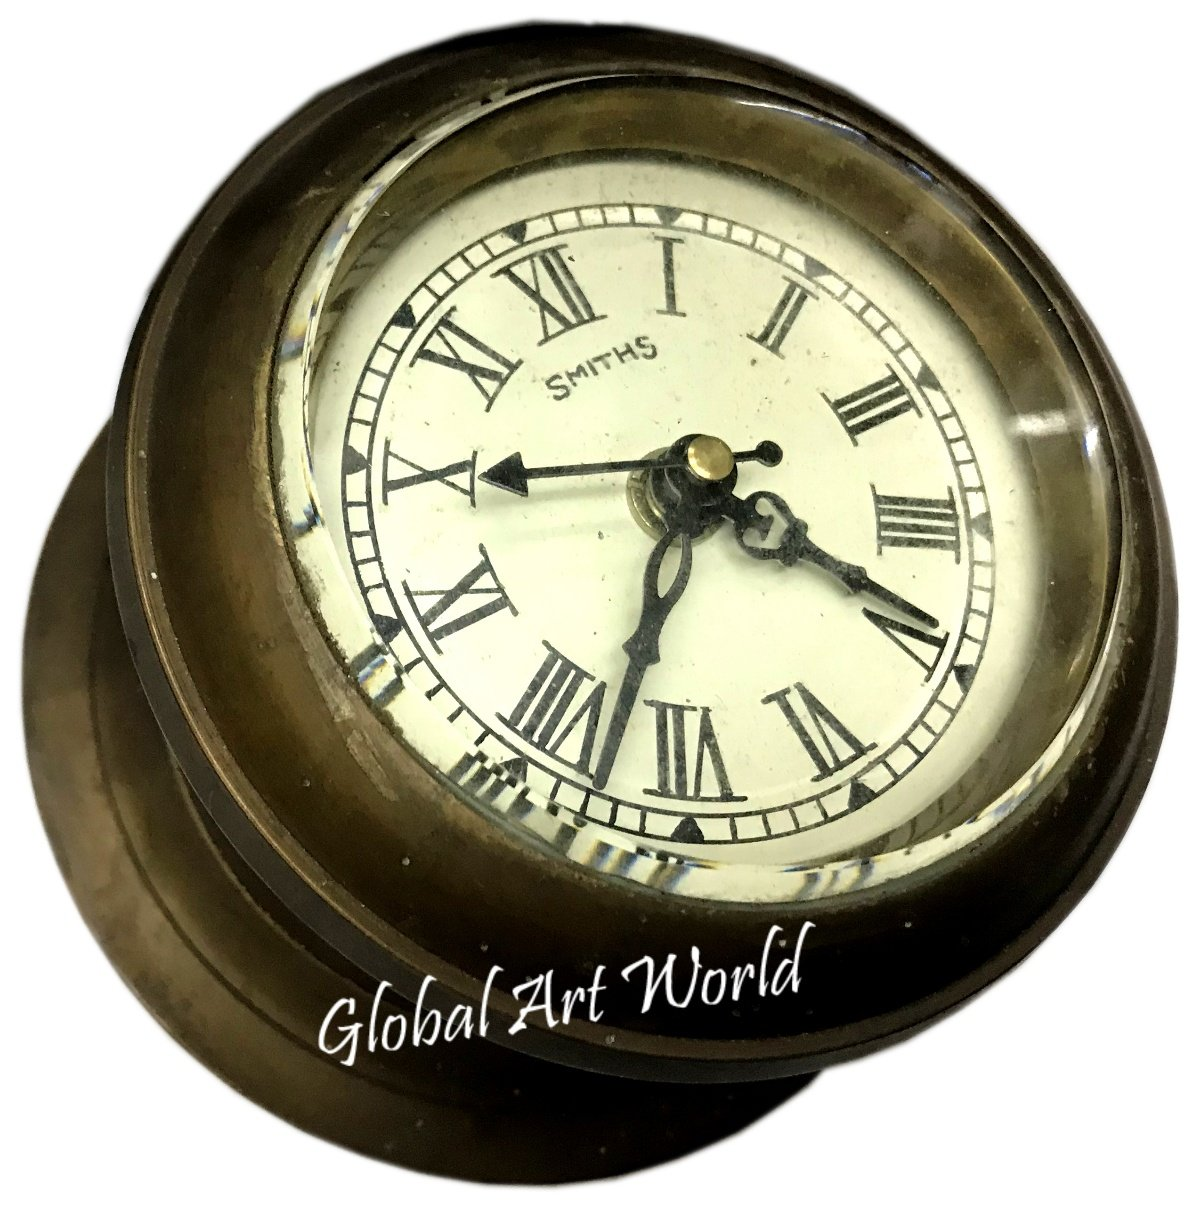 Antiques World Vintage 19th Century Made For London Royal Navy Antique 19th Century Marine Collectible With A Closing Lid On The Top Stylized Ship Wall Clock AWUSAHB 0262